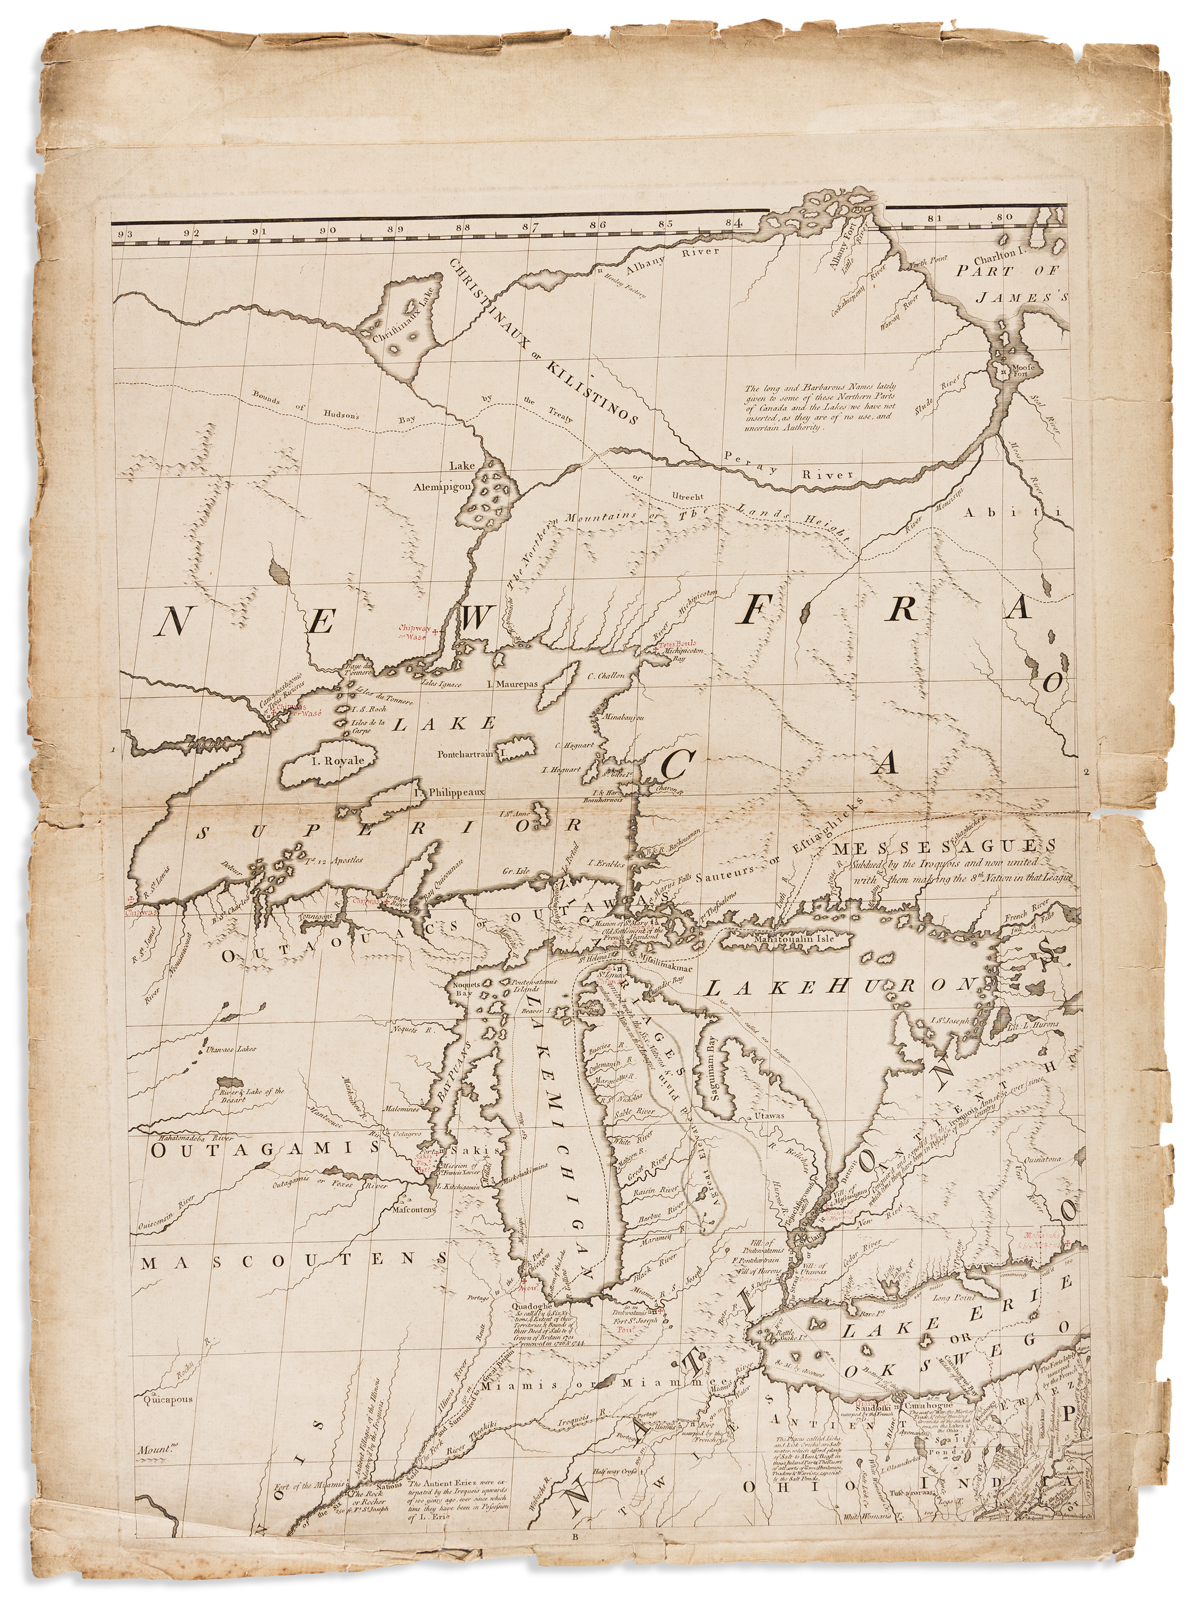 MITCHELL, JOHN. [Sheet 2, from]: A Map of the British and French Dominions in North America.